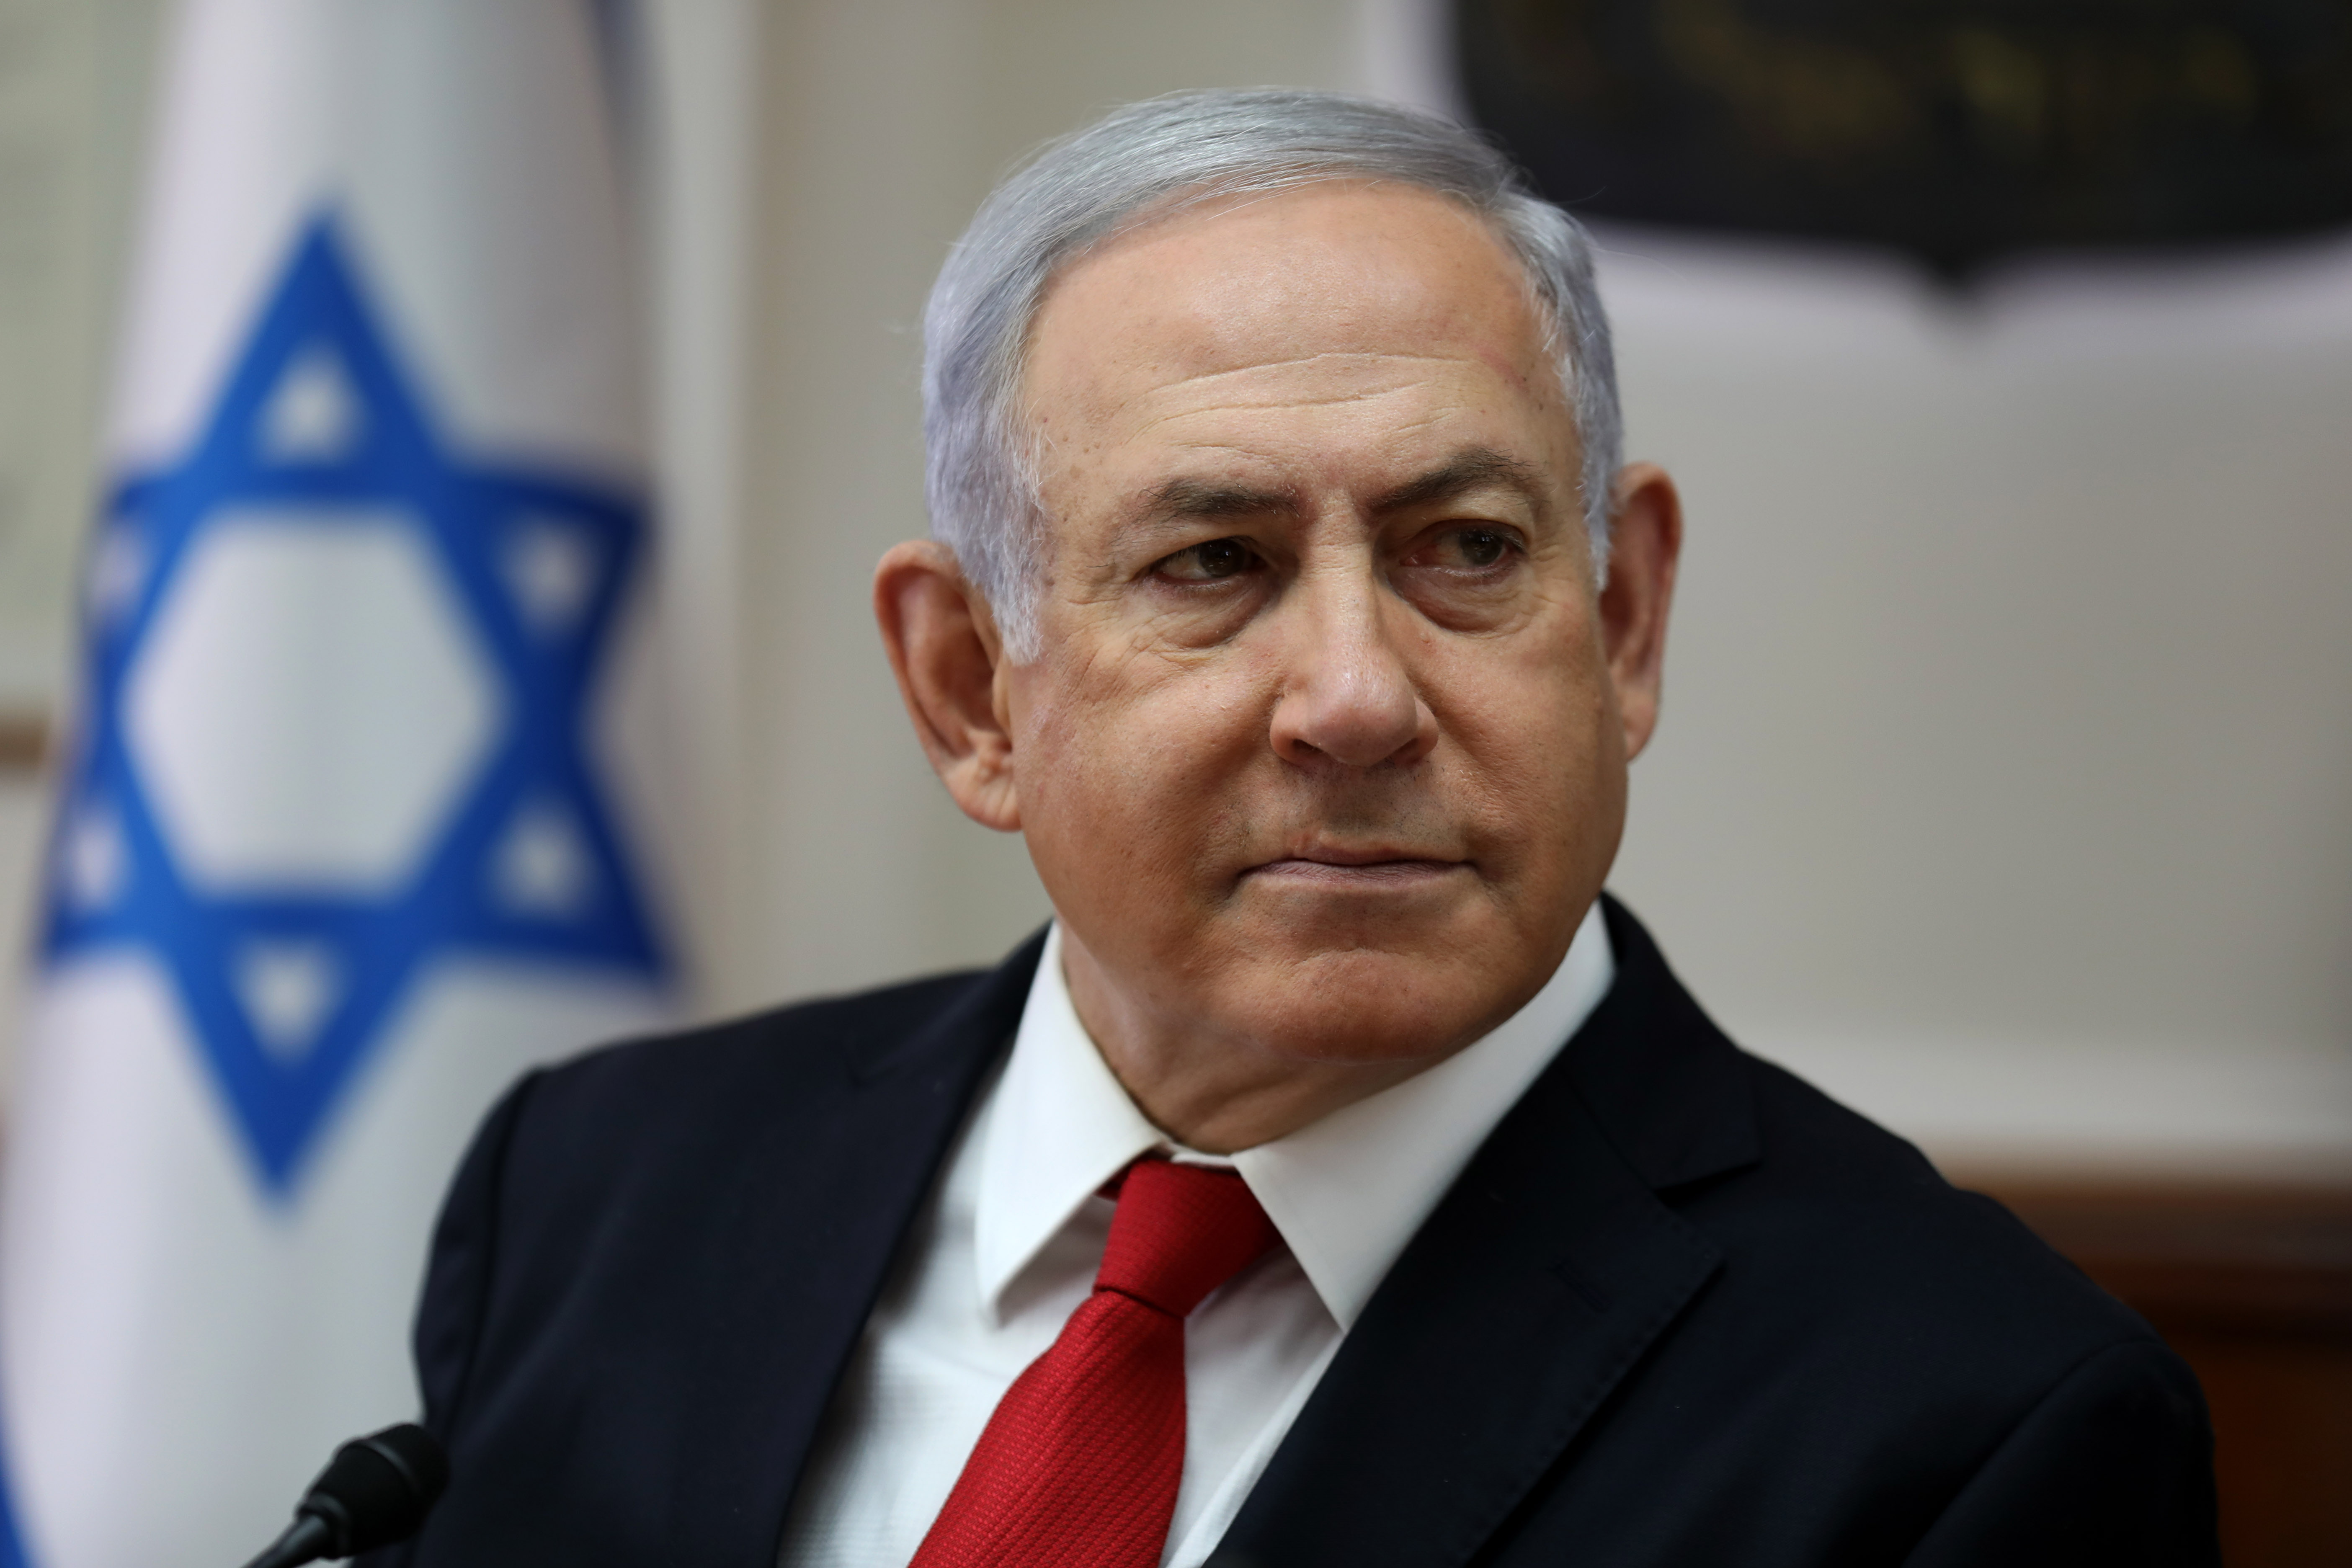 Israeli Prime Minister Benjamin Netanyahu chairs a cabinet meeting at his office in Jerusalem on Oct. 27, 2019.